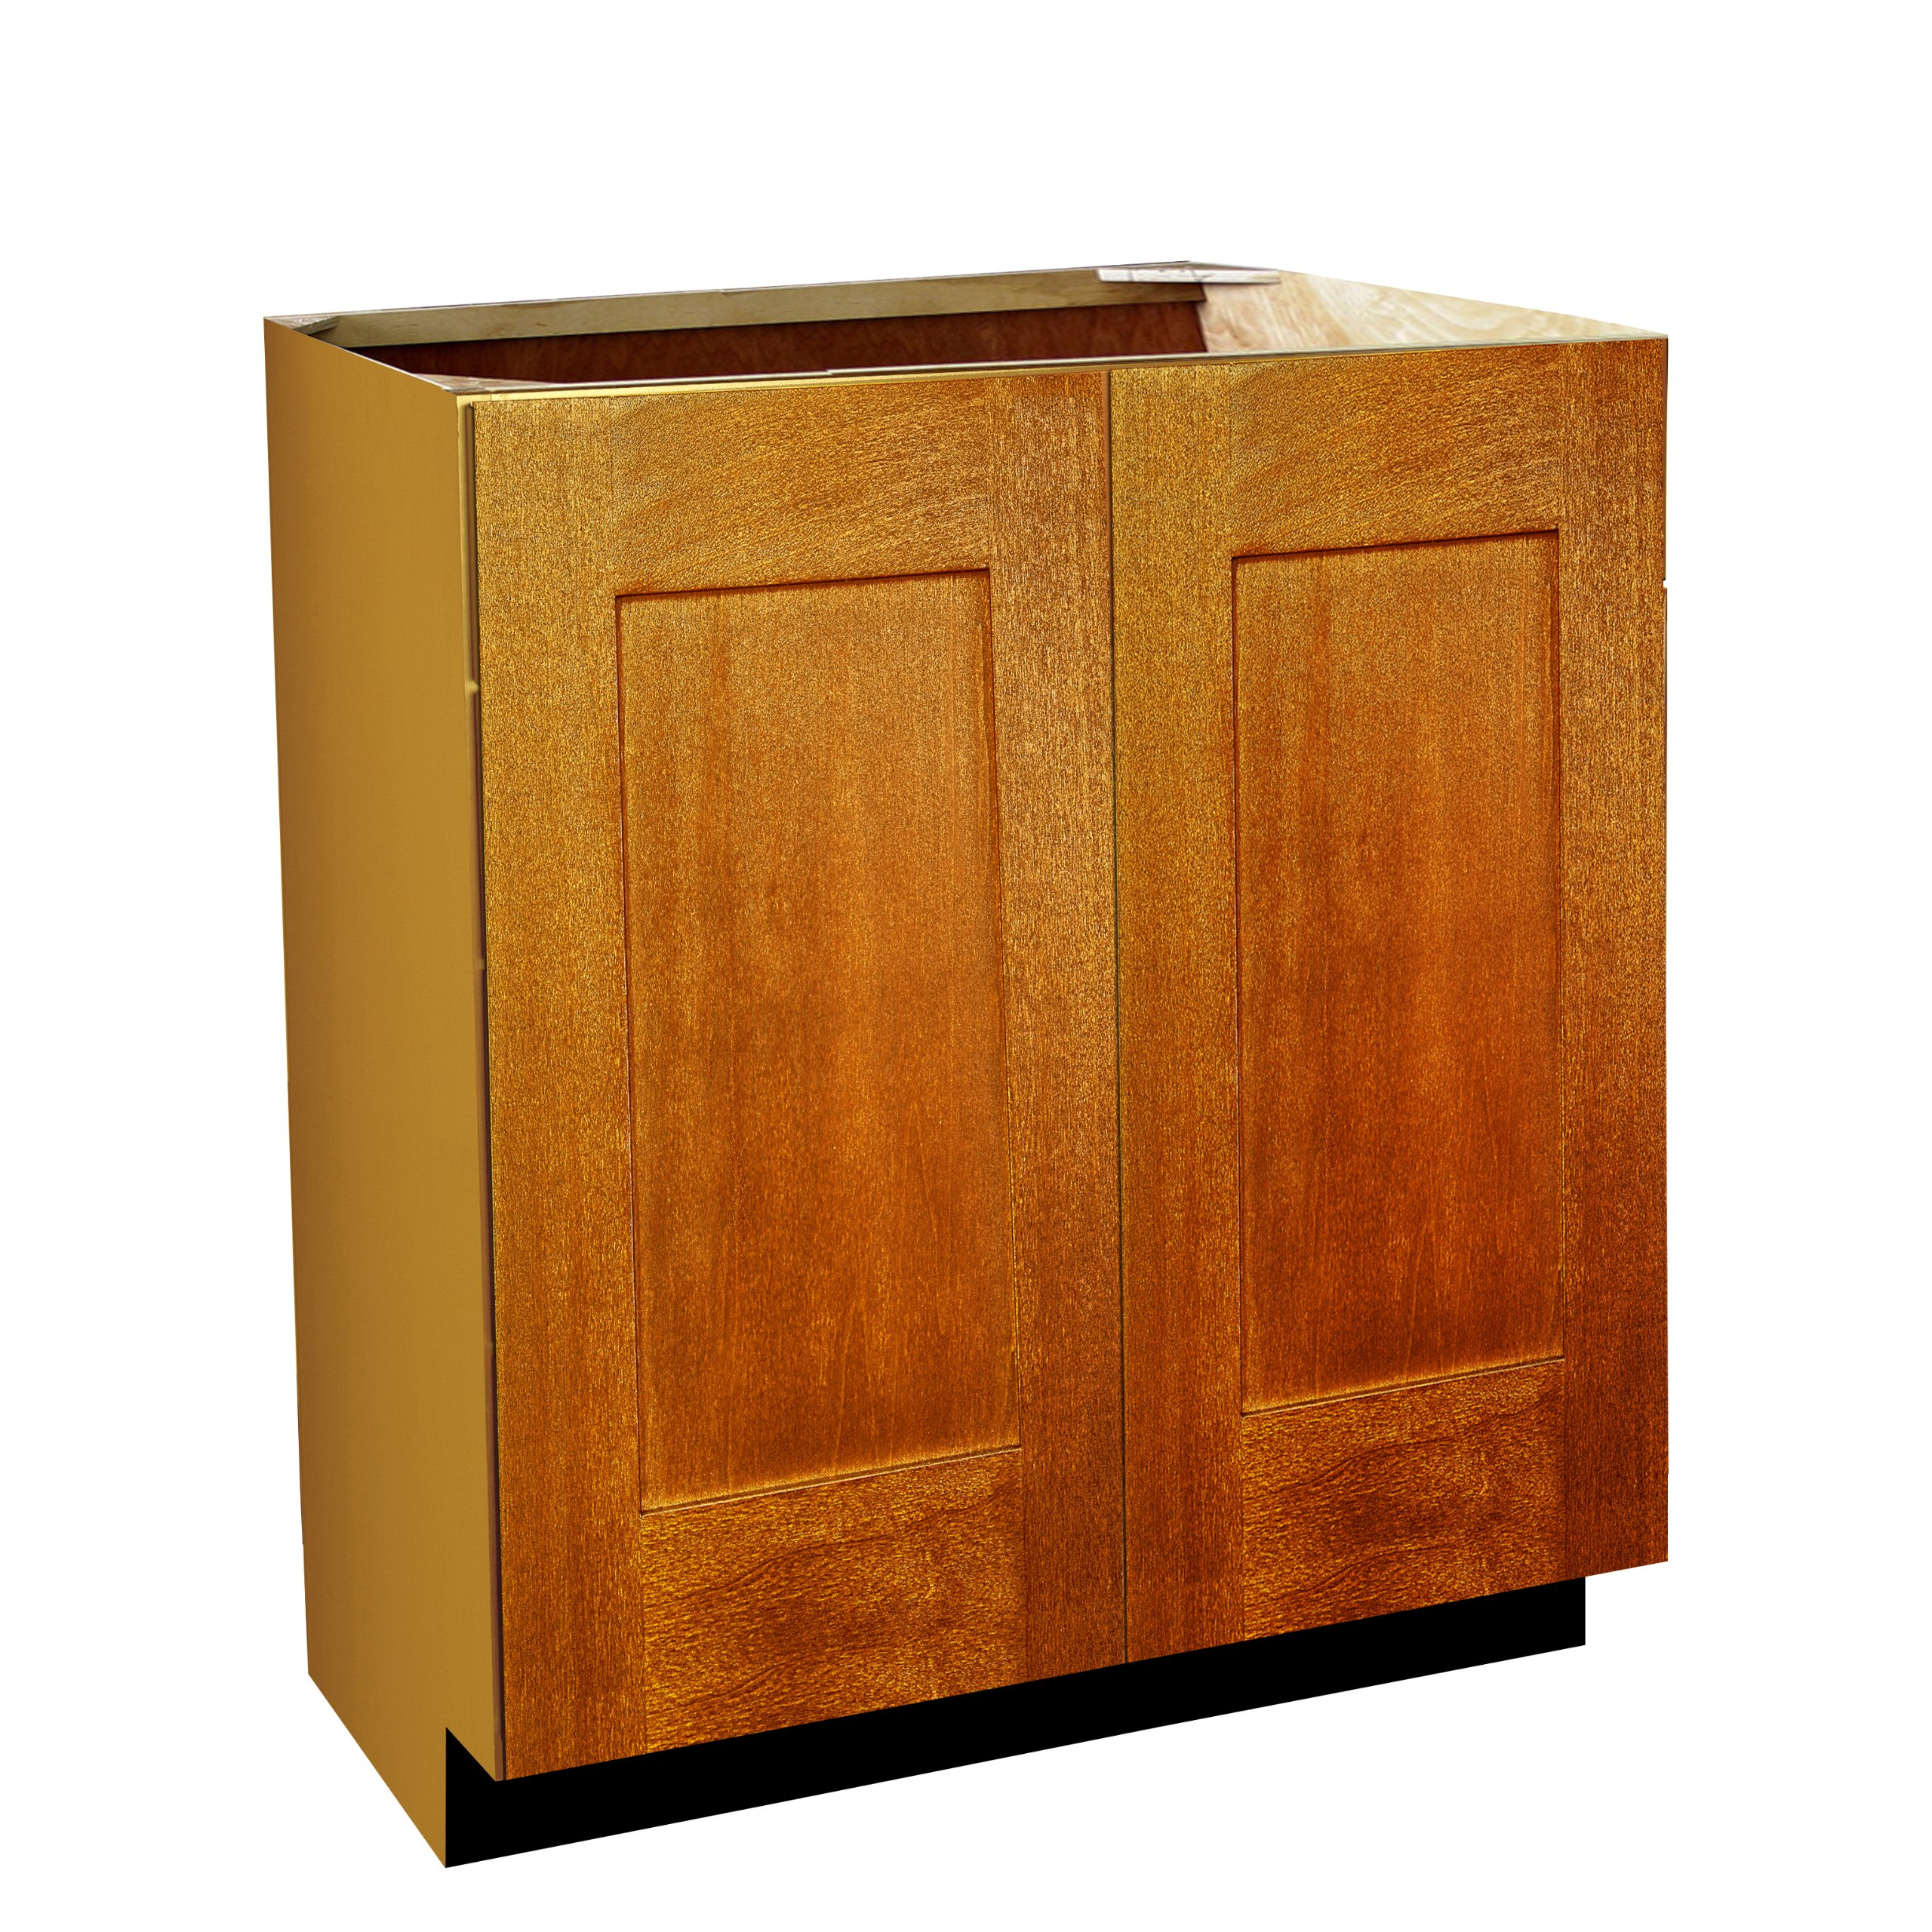 Shaker Panel Door Style Vanity Sink Base with Full Height Doors 24'' Wide 18'' Deep 30'' High in a Maple Spice Finish Model VSBFH241830-SS by Harbor City Millwork